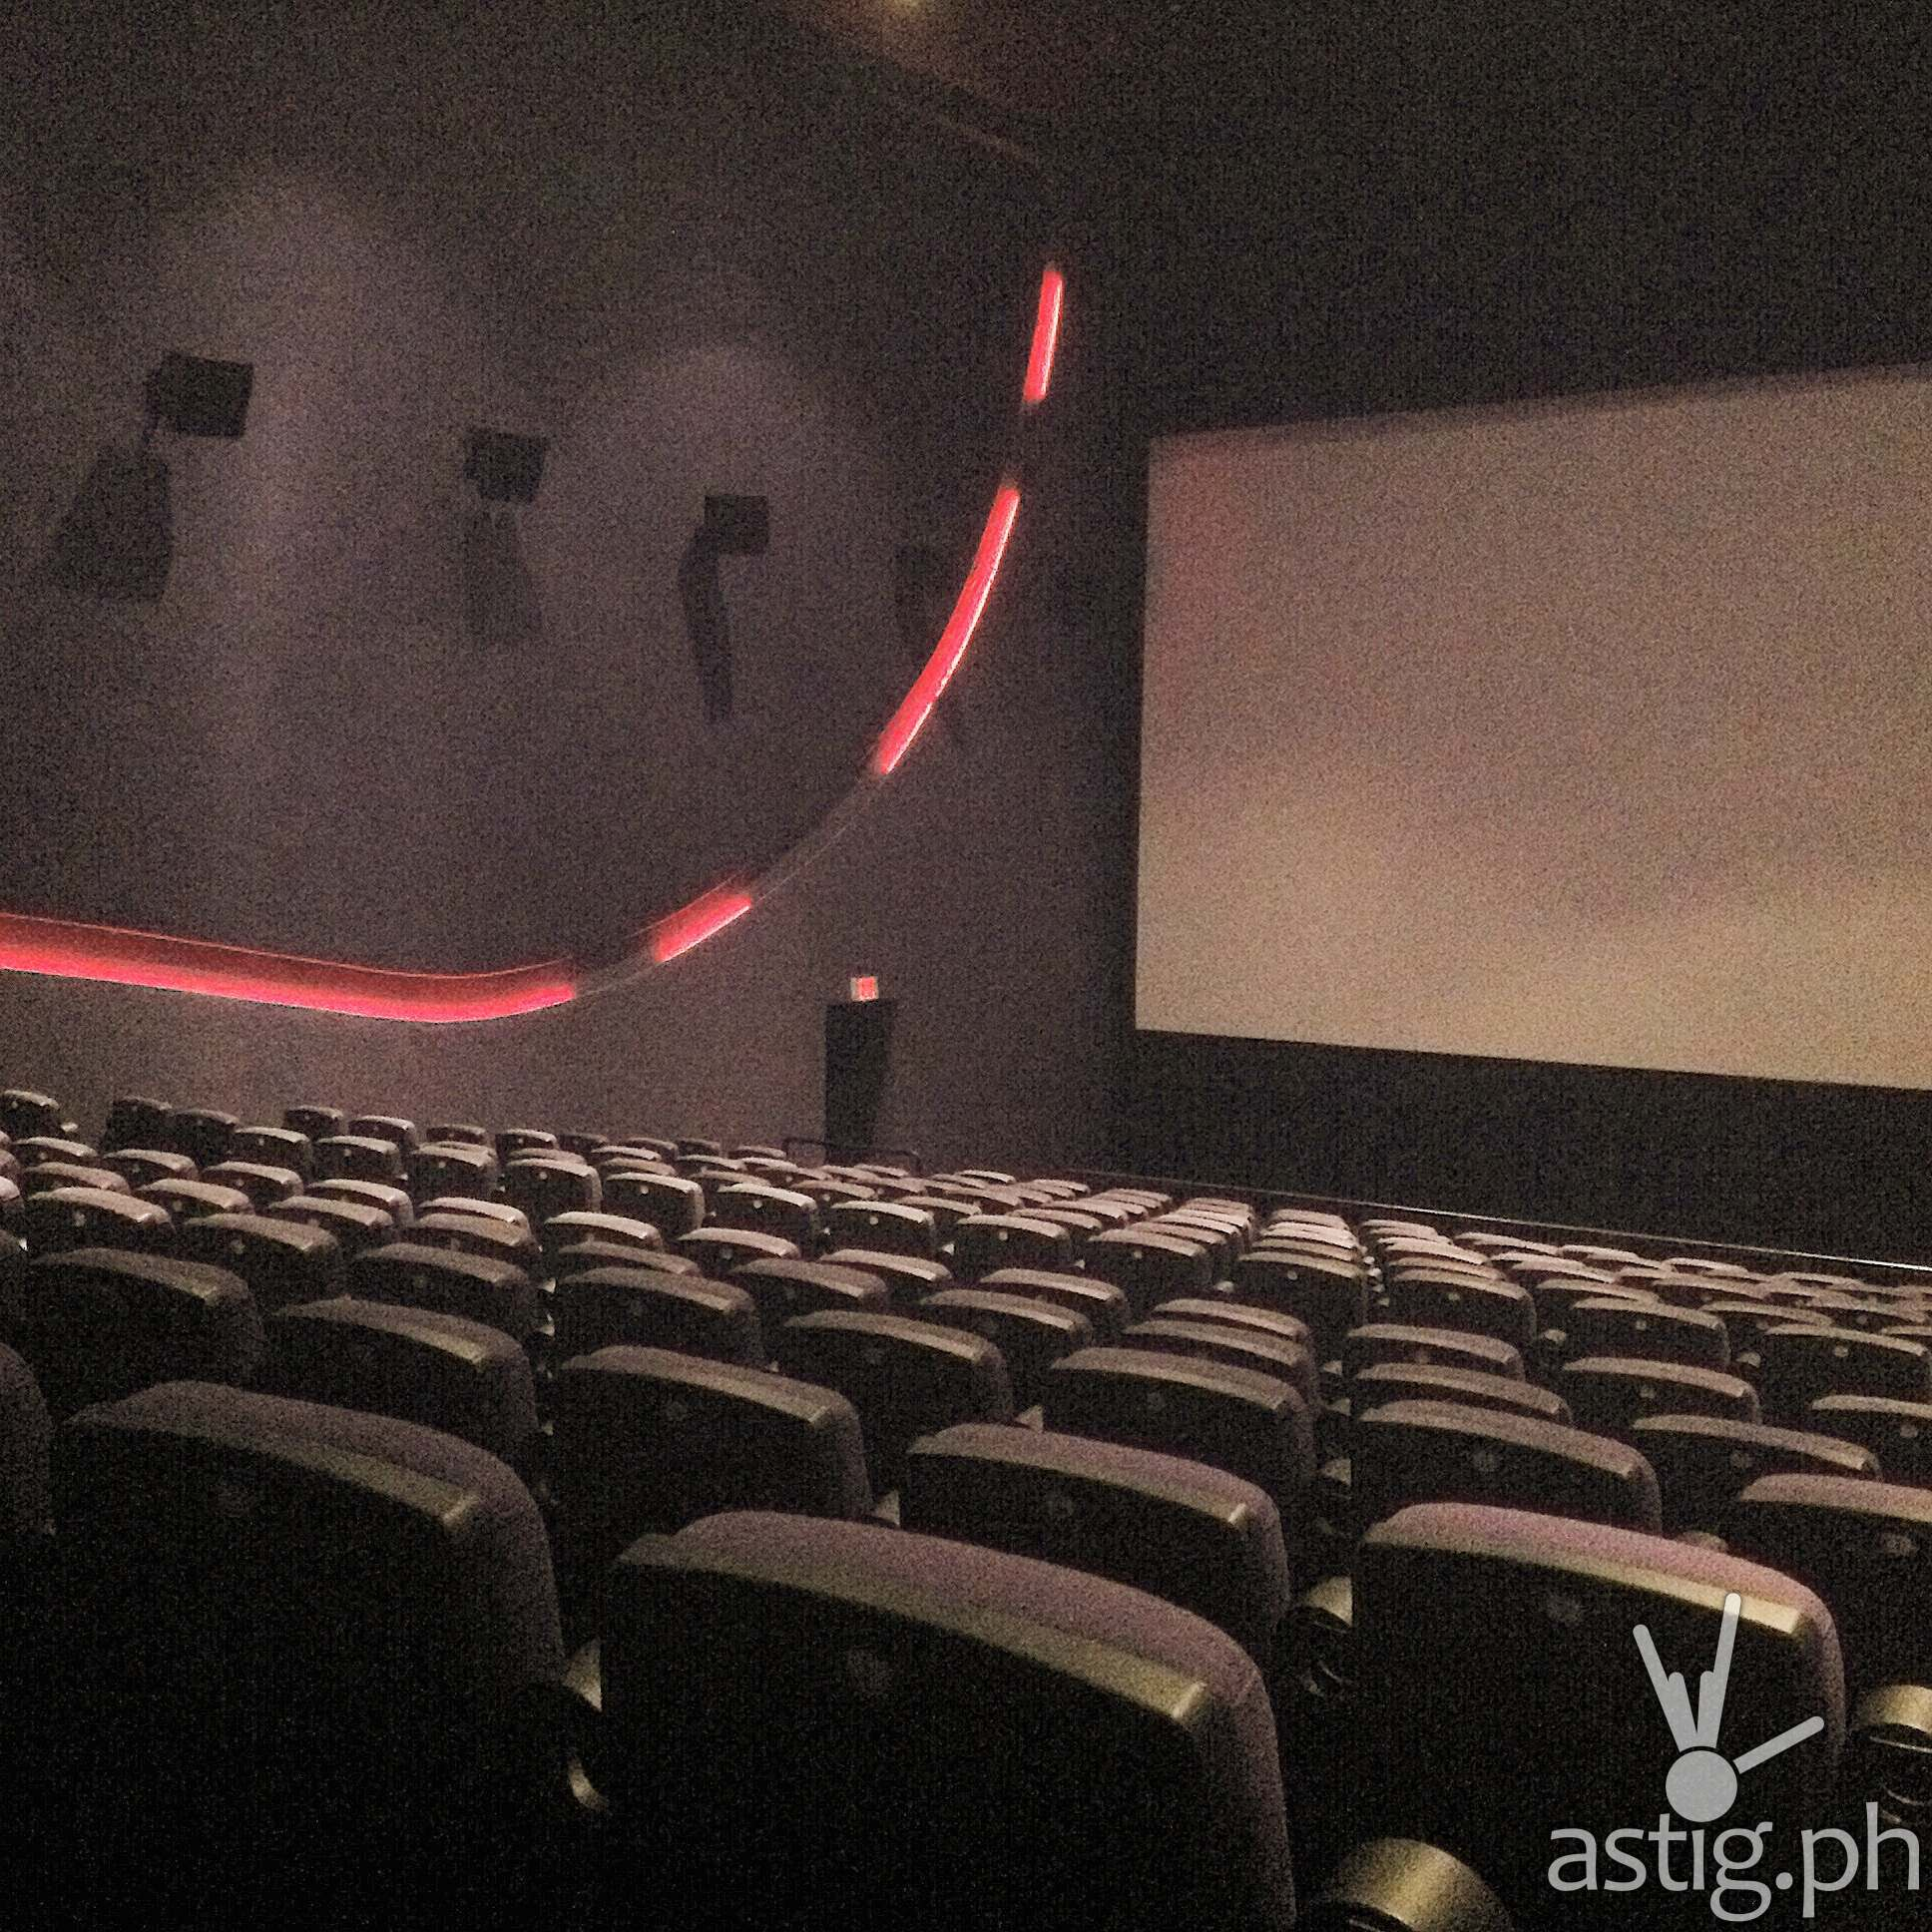 The Promenade cinemas are very clean and comfortable - much better than watching at home, yes?